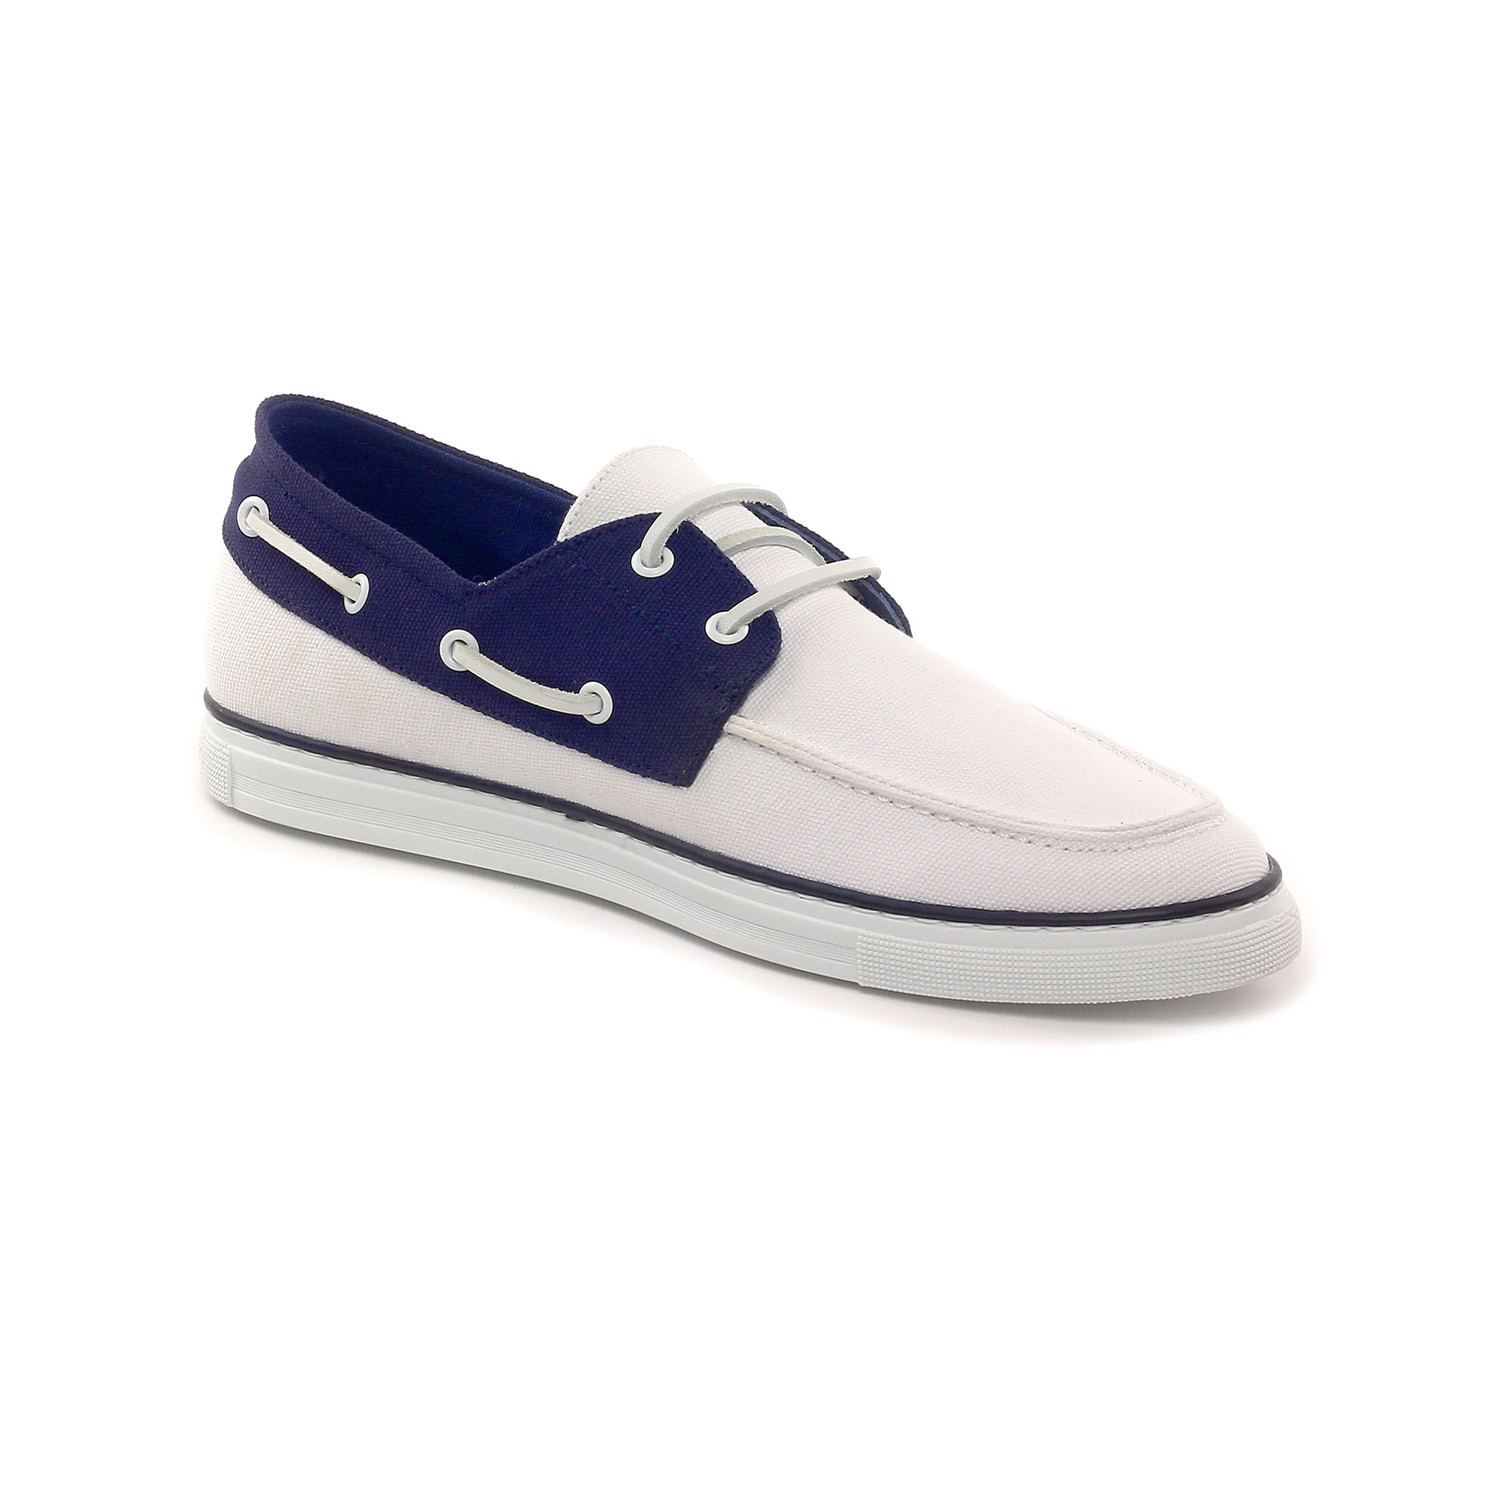 boat shoe white navy 39 rooster league